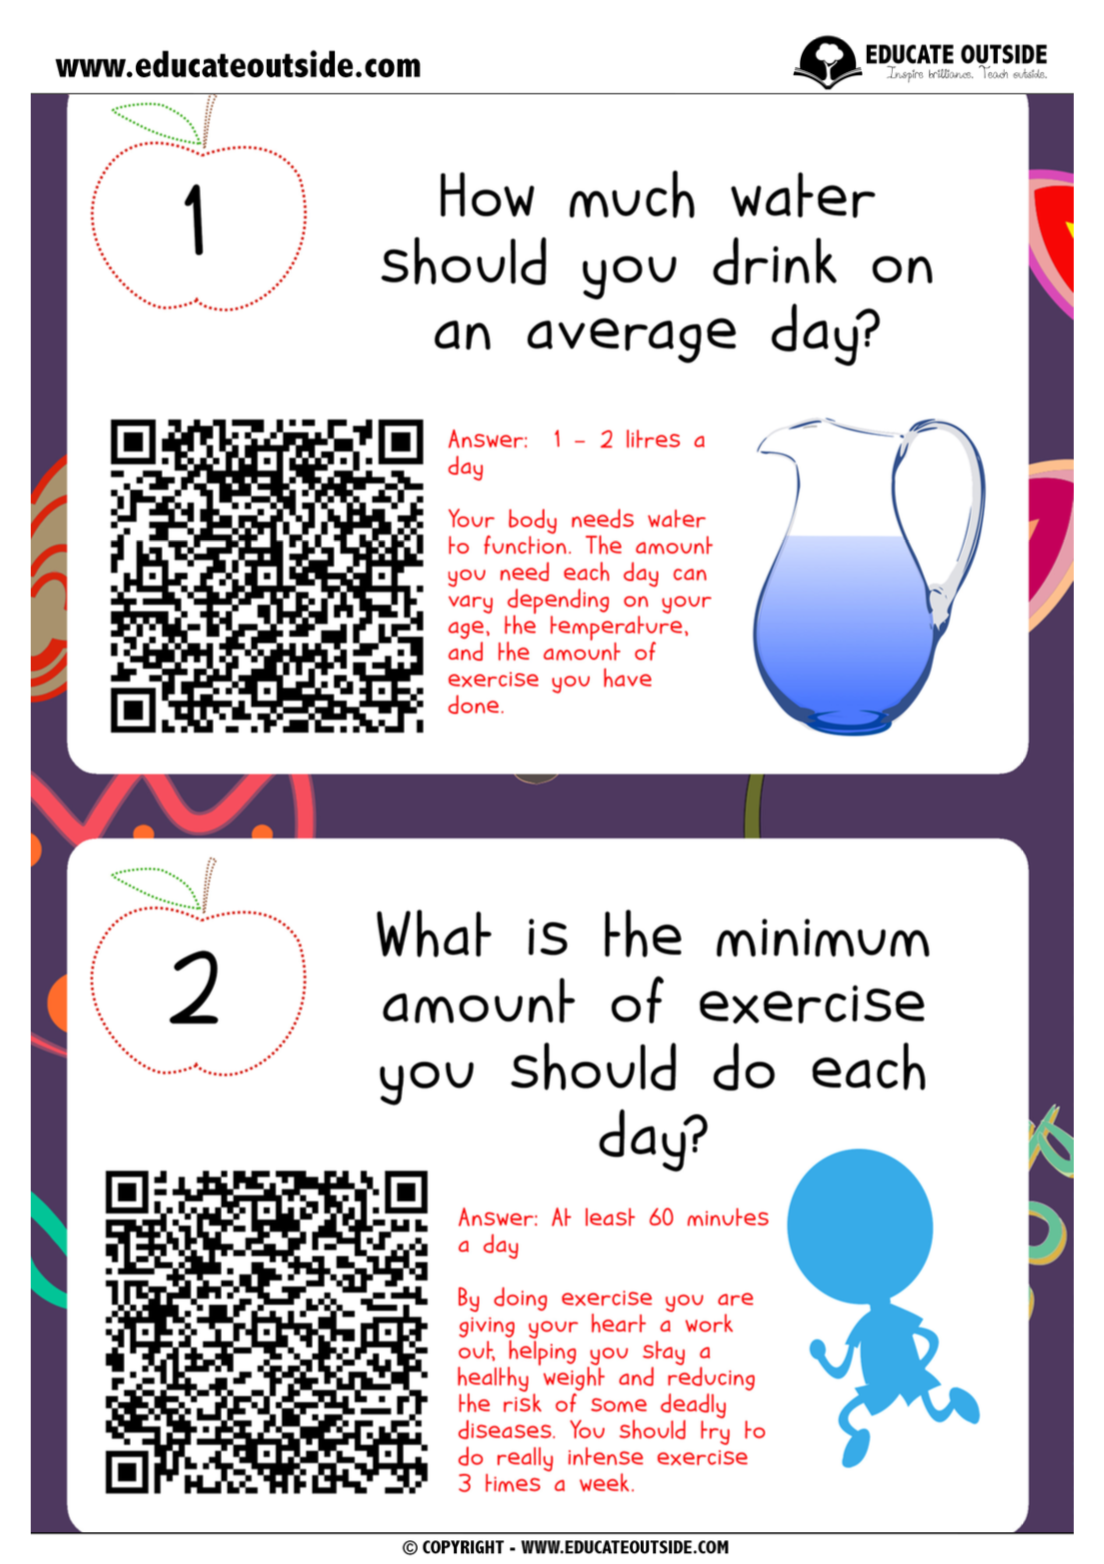 Keeping Healthy: QR Code Quiz - Educate Outside